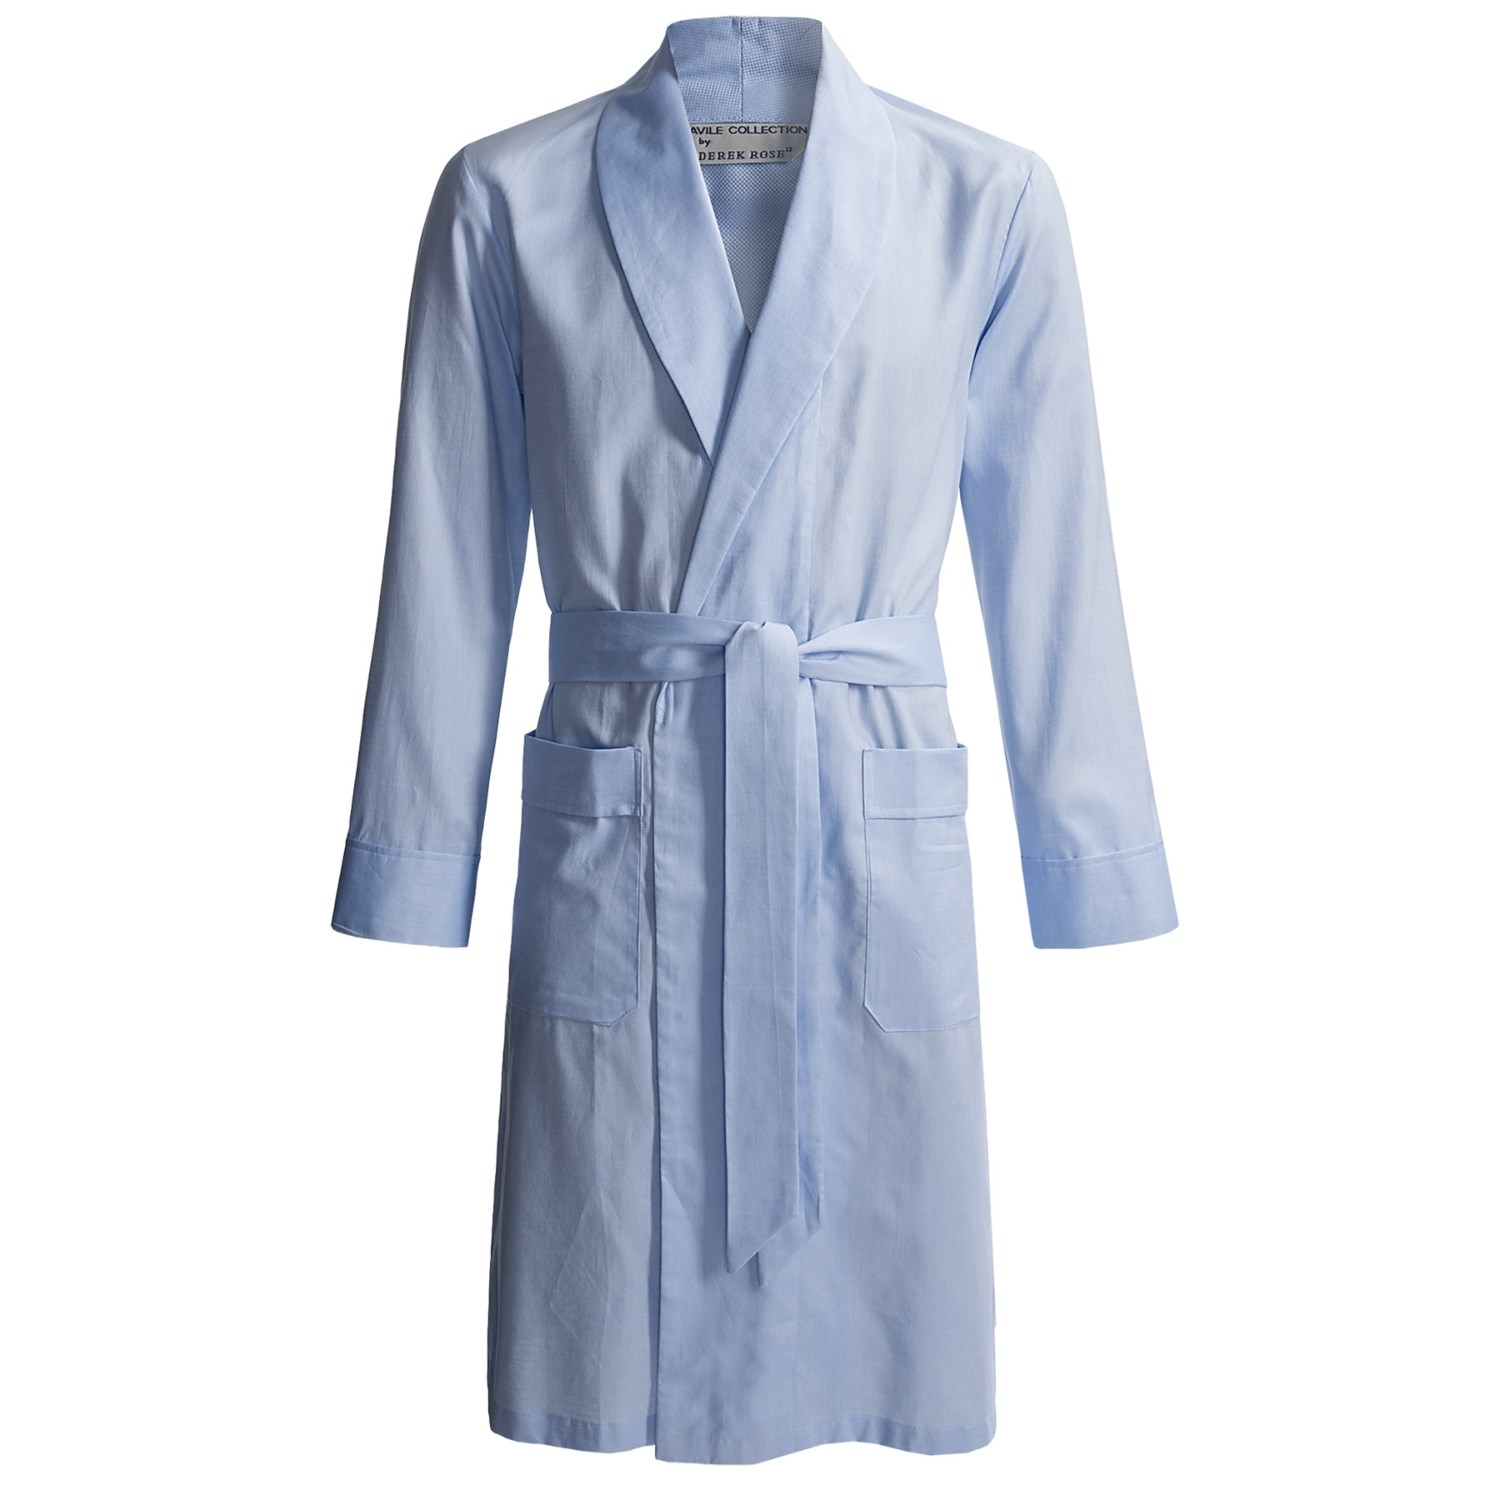 white housecoat related keywords suggestions white housecoat long tail keywords. Black Bedroom Furniture Sets. Home Design Ideas